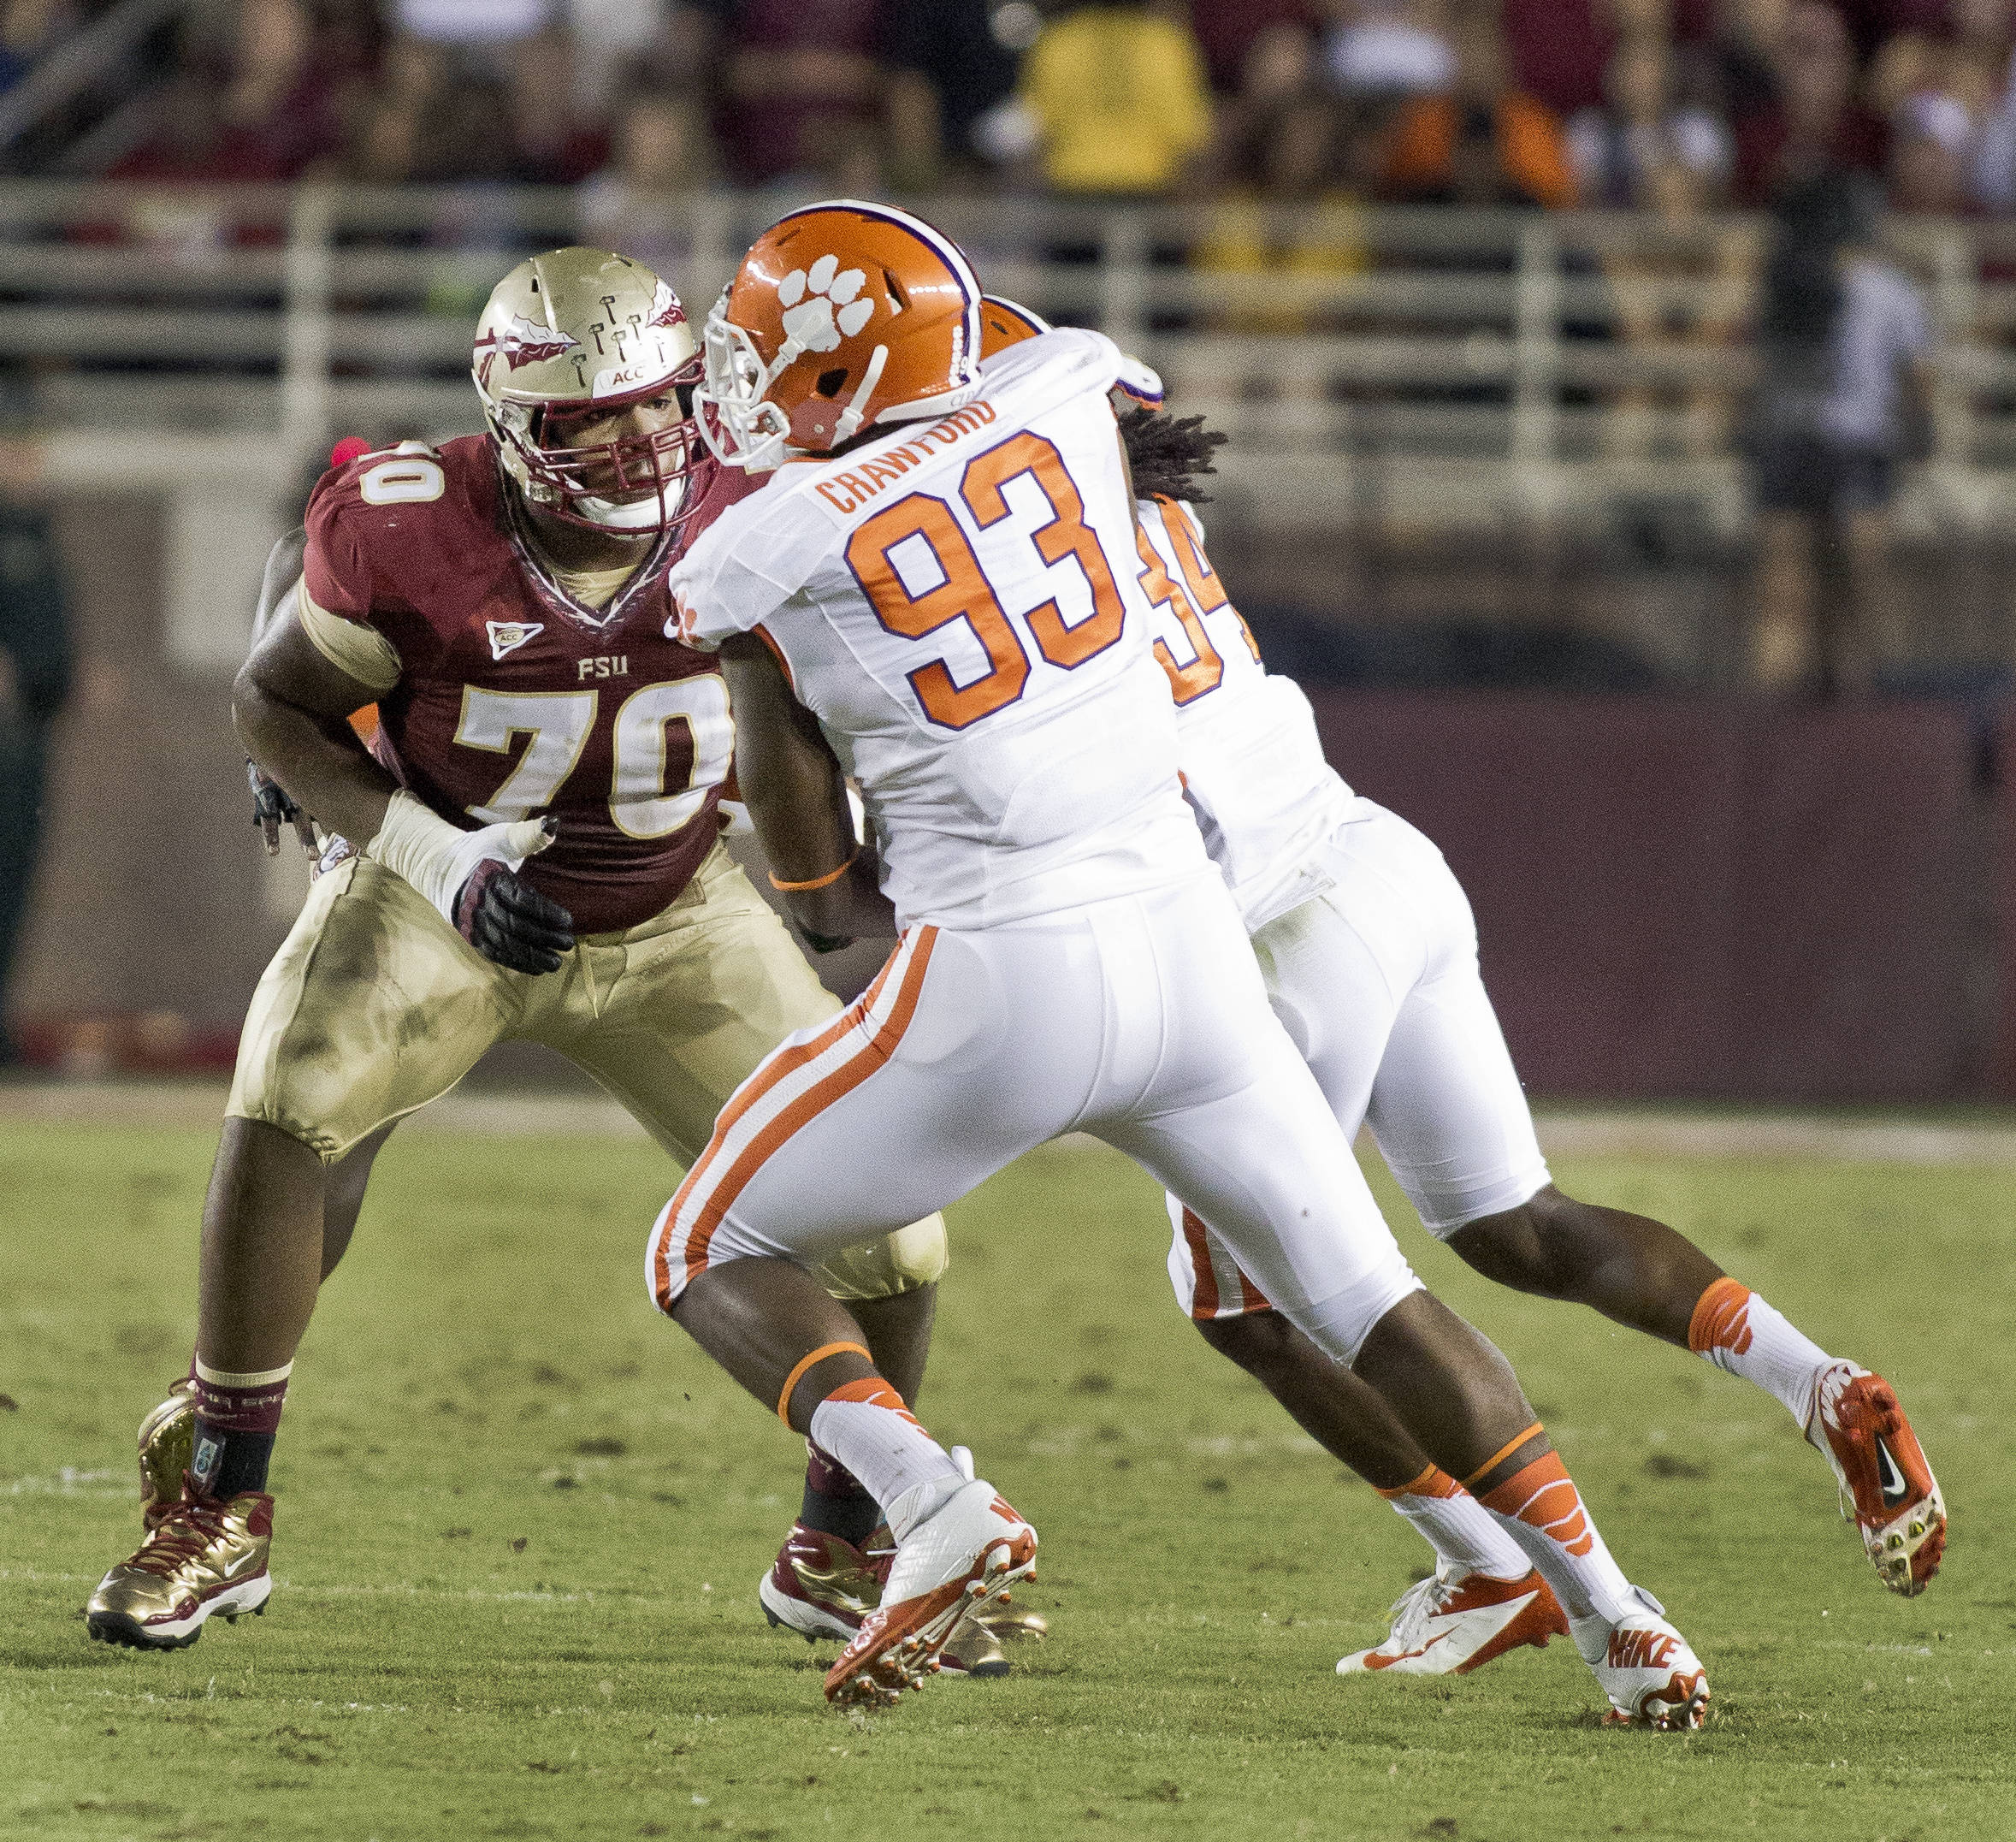 Josue Matias (70) taking on a rusher, FSU vs Clemson, 9/22/12 (Photo by Steve Musco)